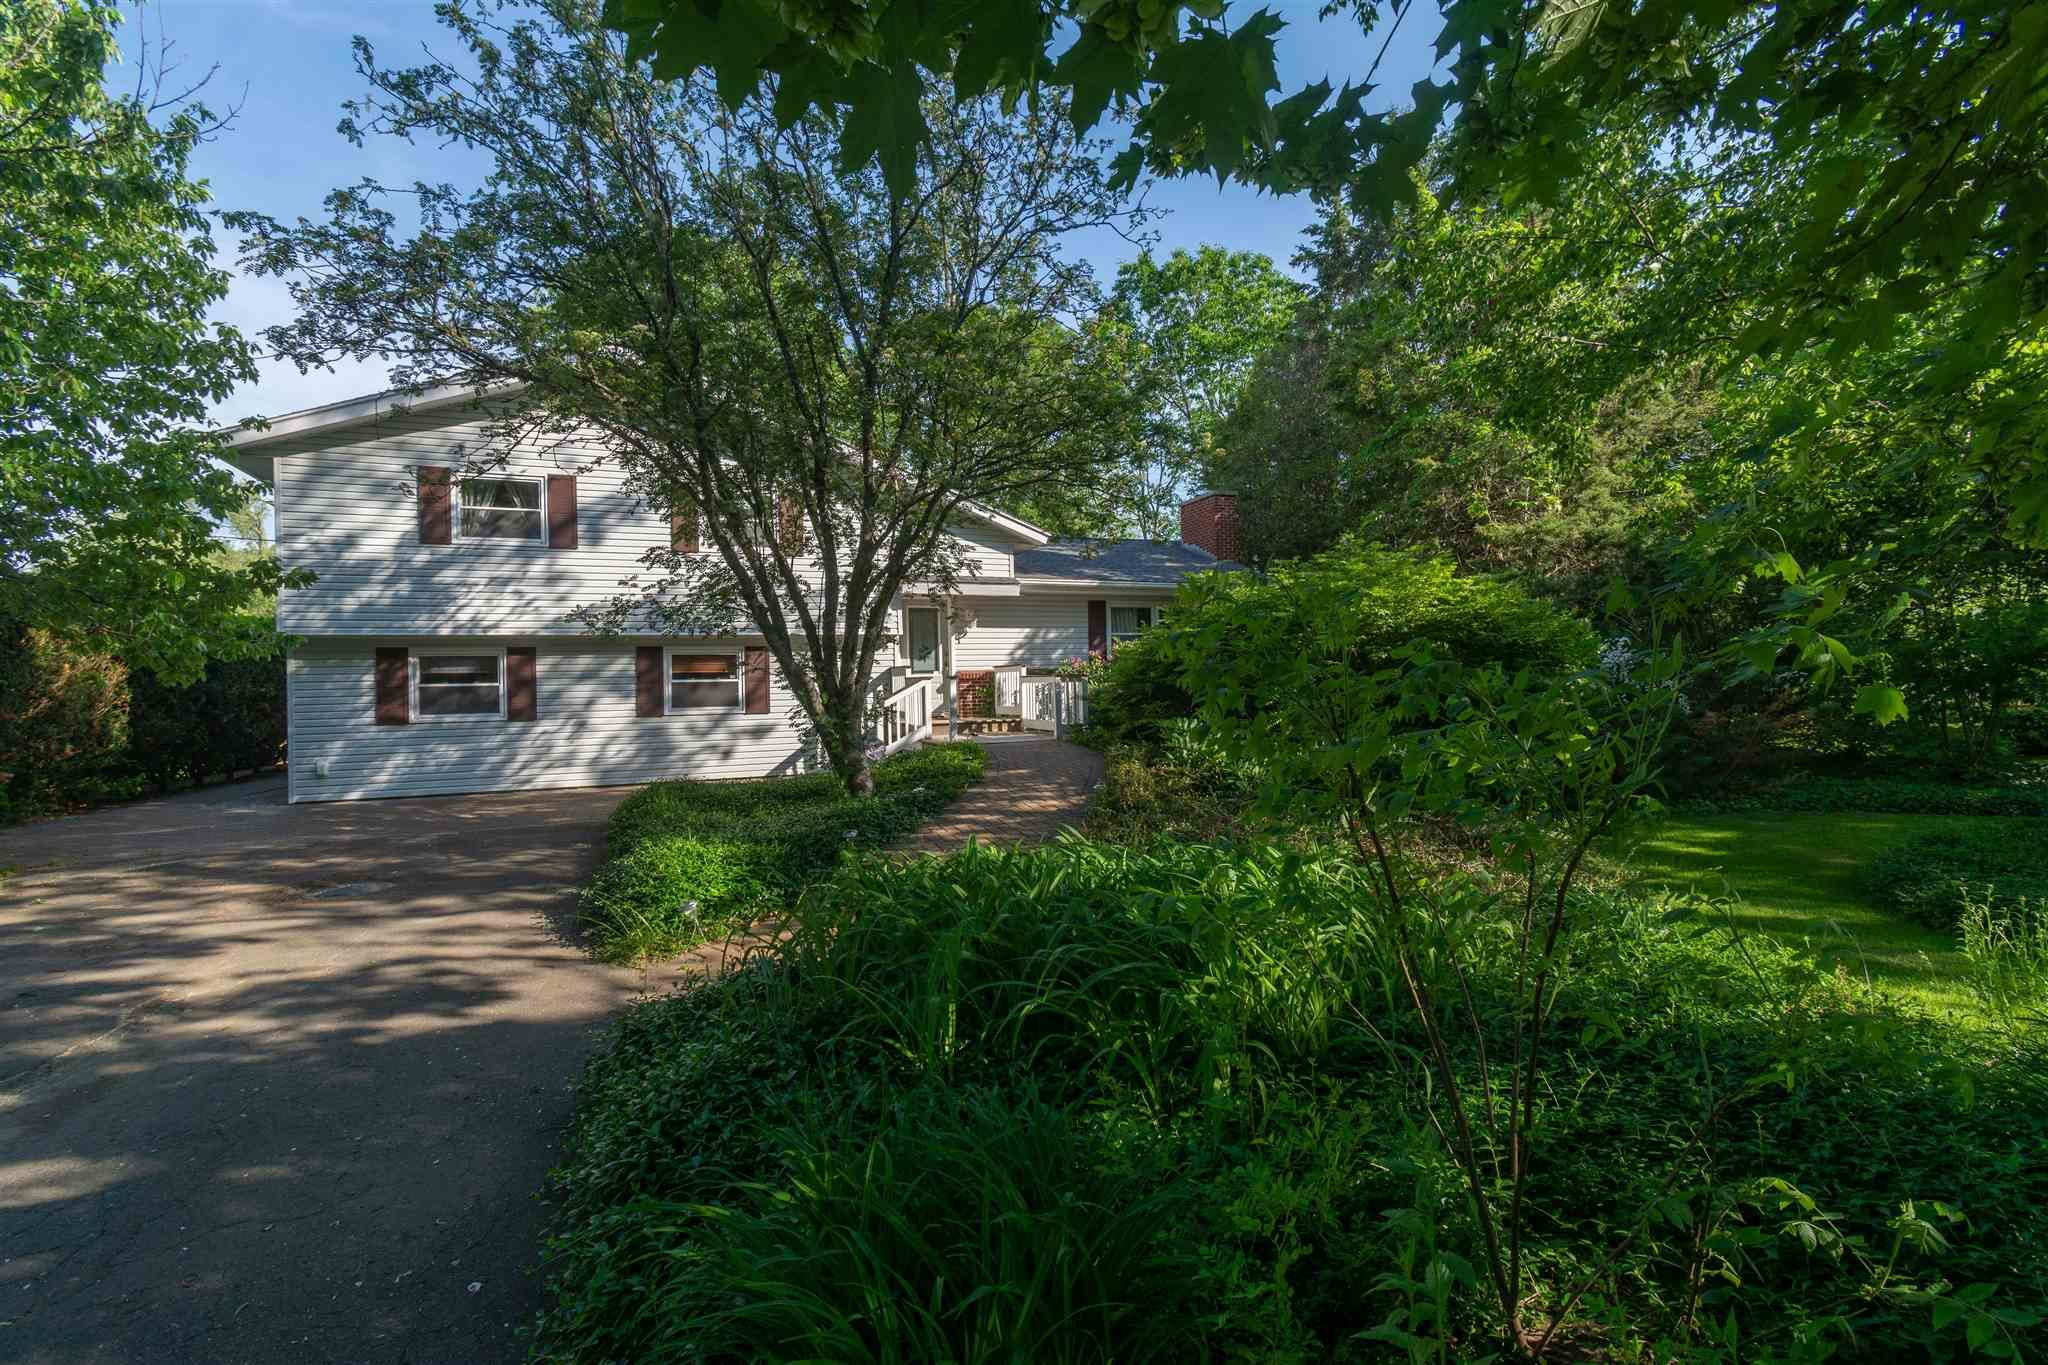 Main Photo: 958 Kelly Drive in Aylesford: 404-Kings County Residential for sale (Annapolis Valley)  : MLS®# 202114318